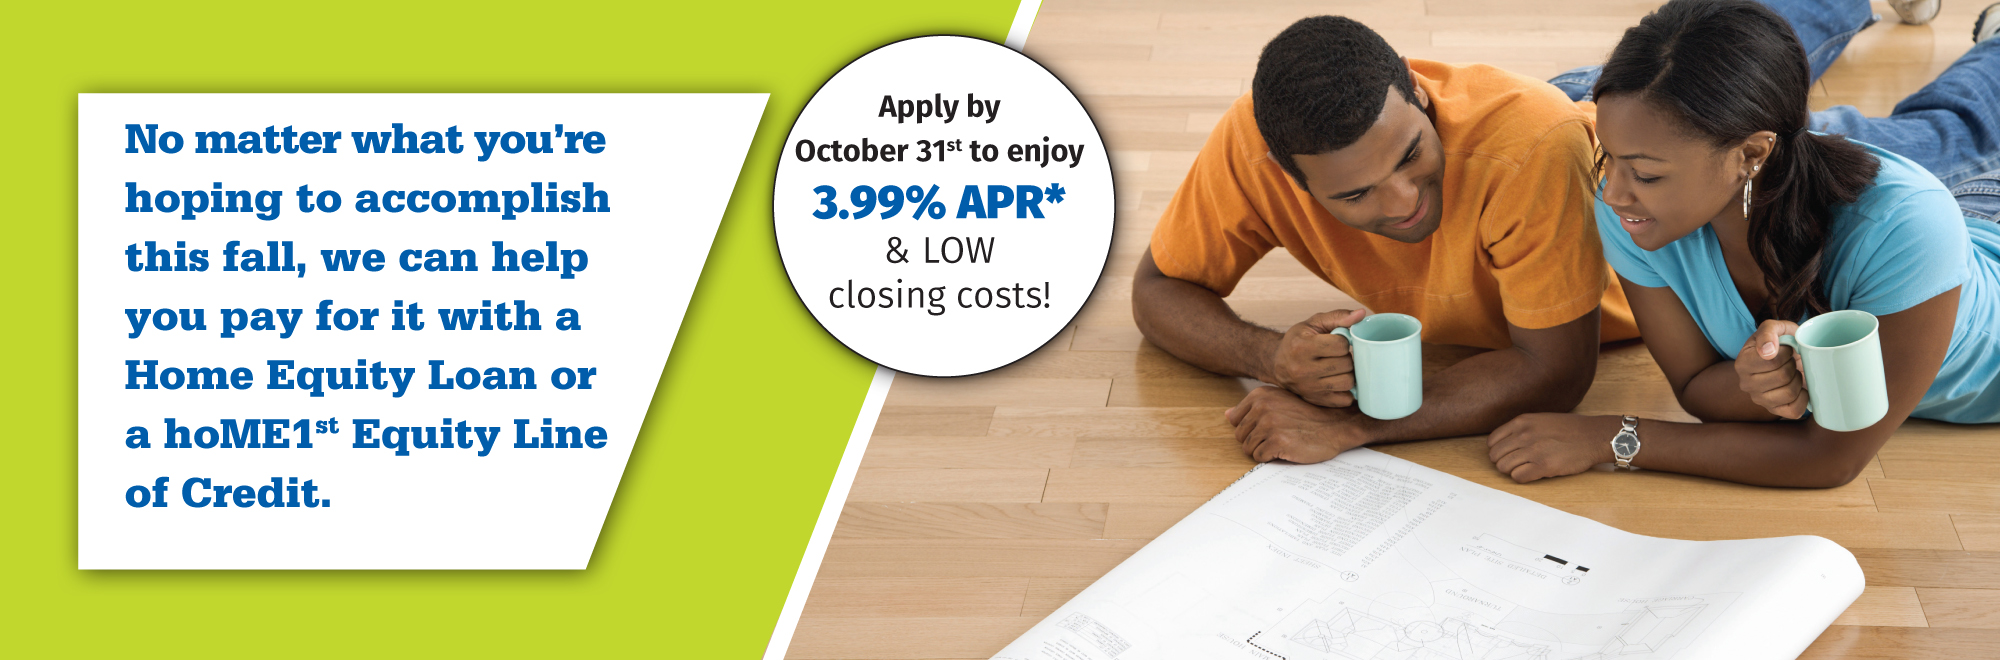 Home Equity Loan Special - click for details.